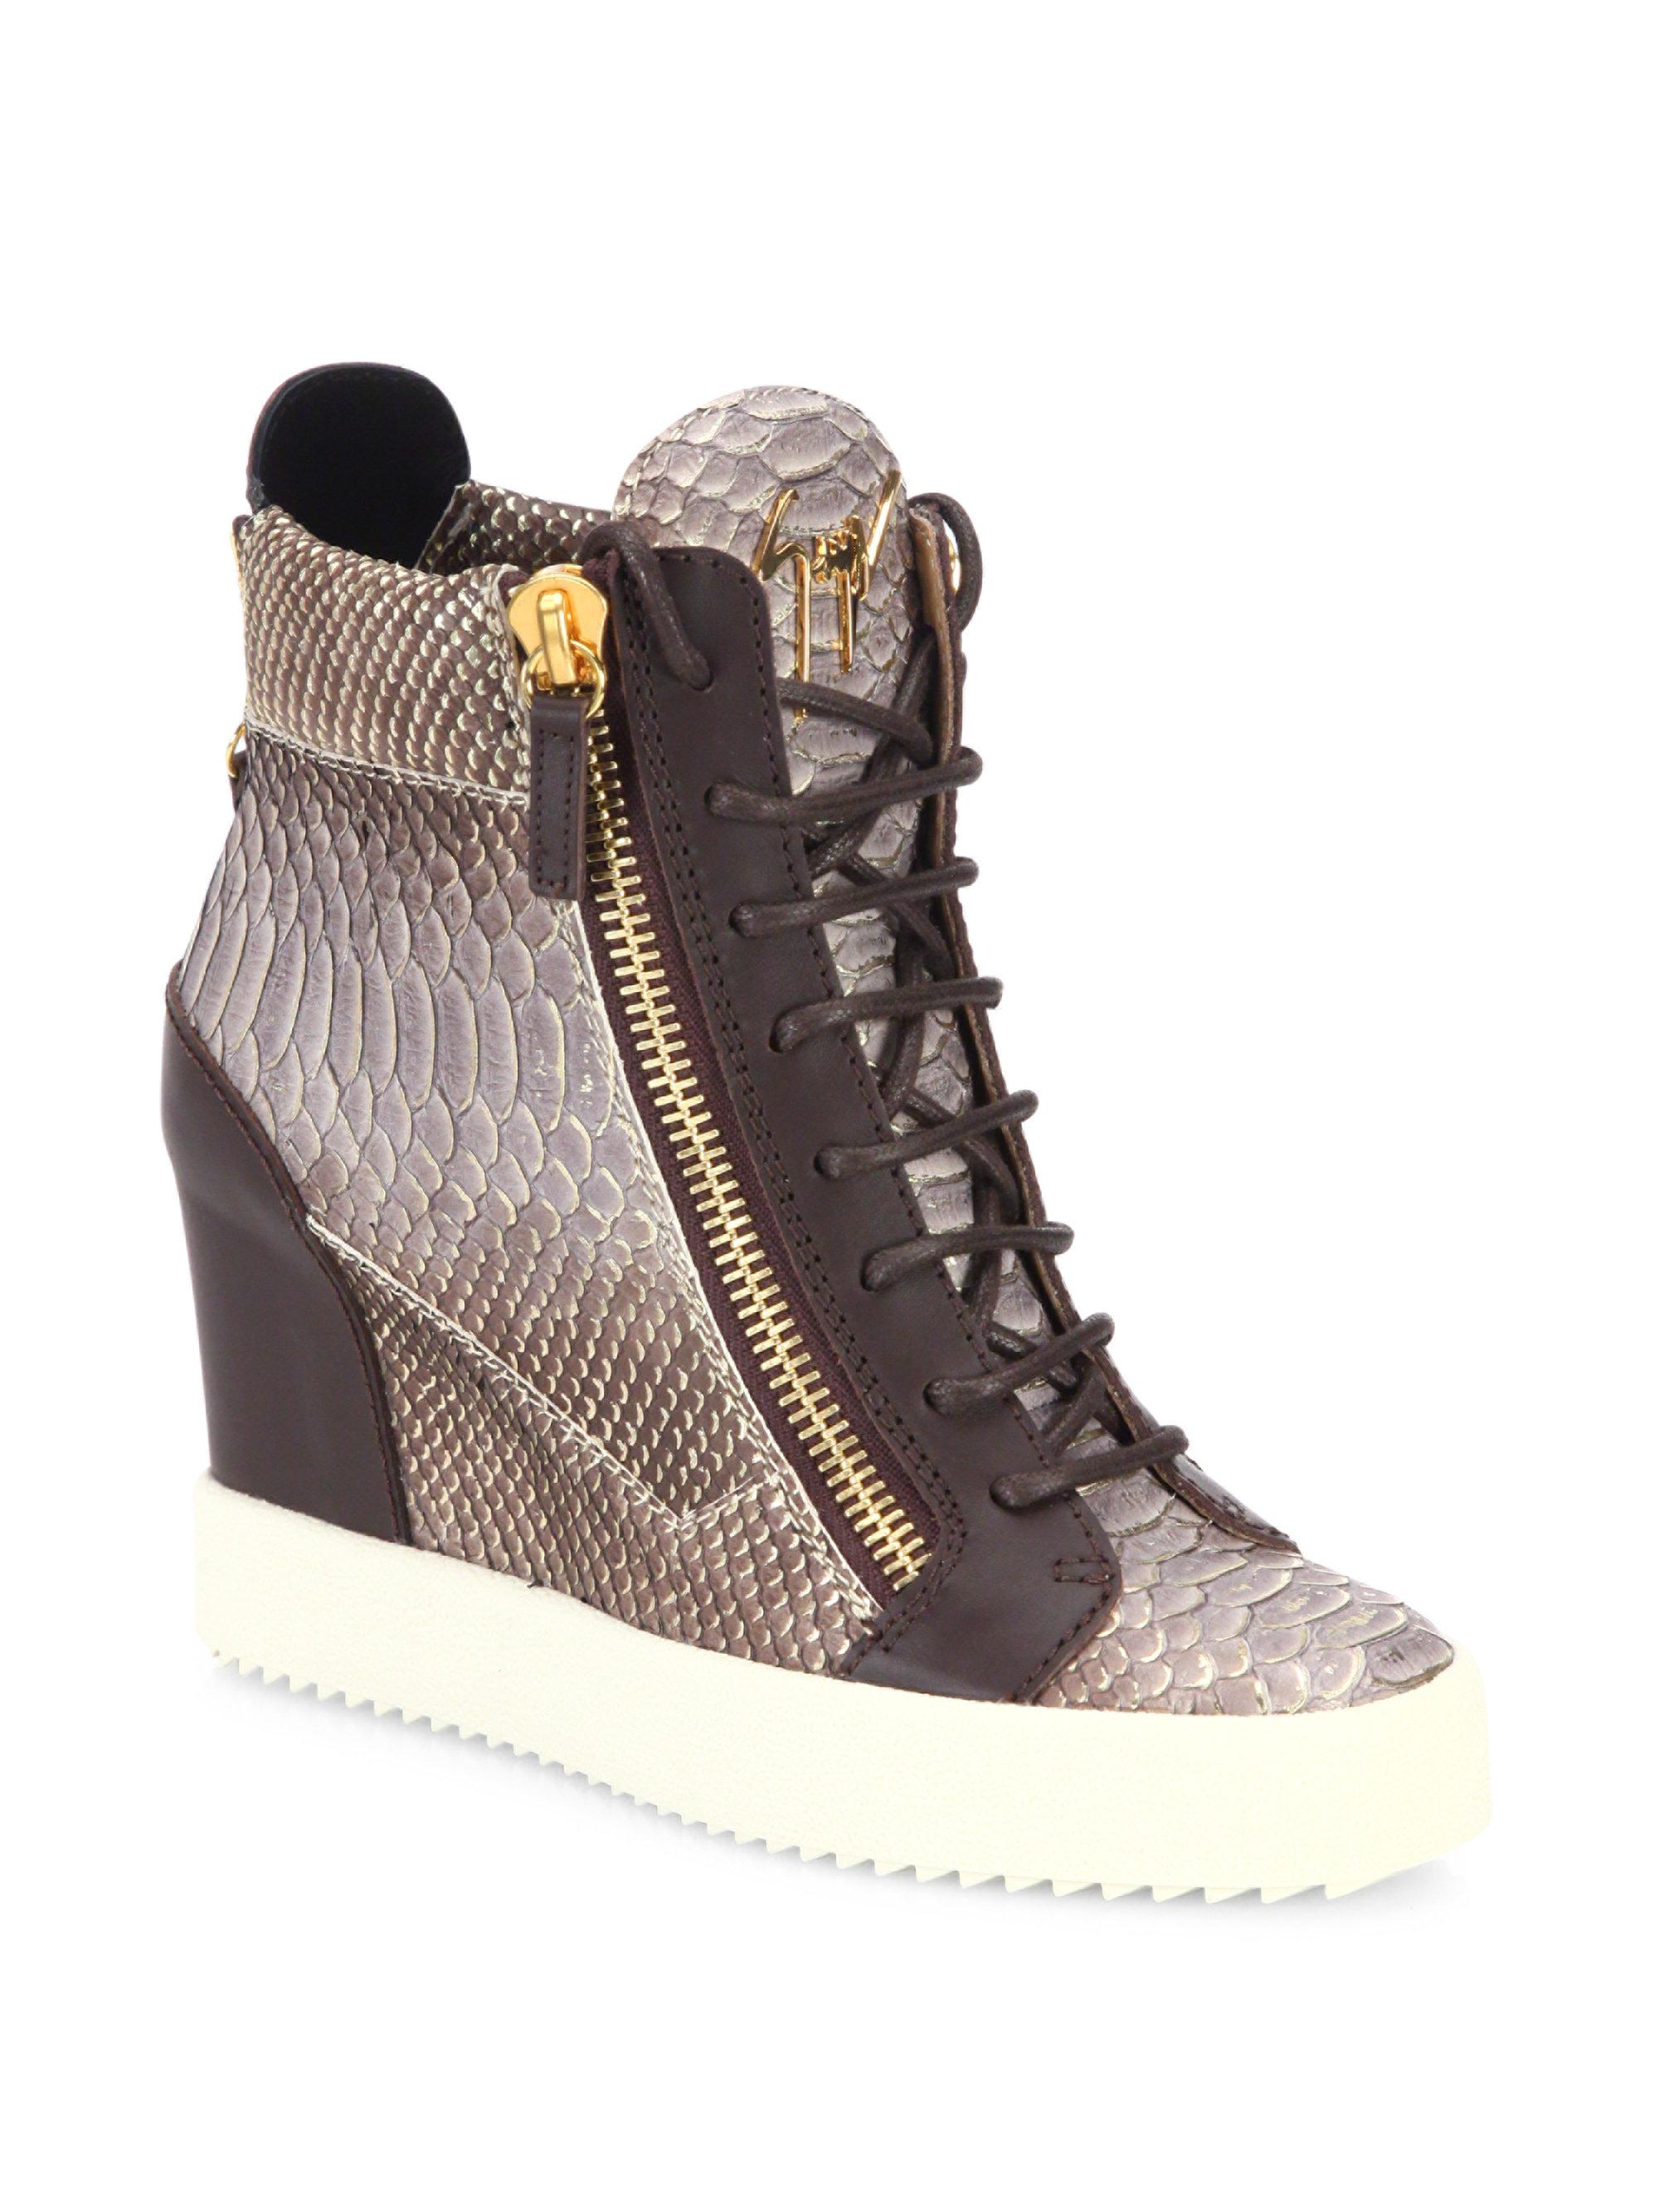 real cheap price Giuseppe Zanotti Embossed Leather Wedge Sneakers cheap how much sale best place wide range of for sale fhXQgv5sv